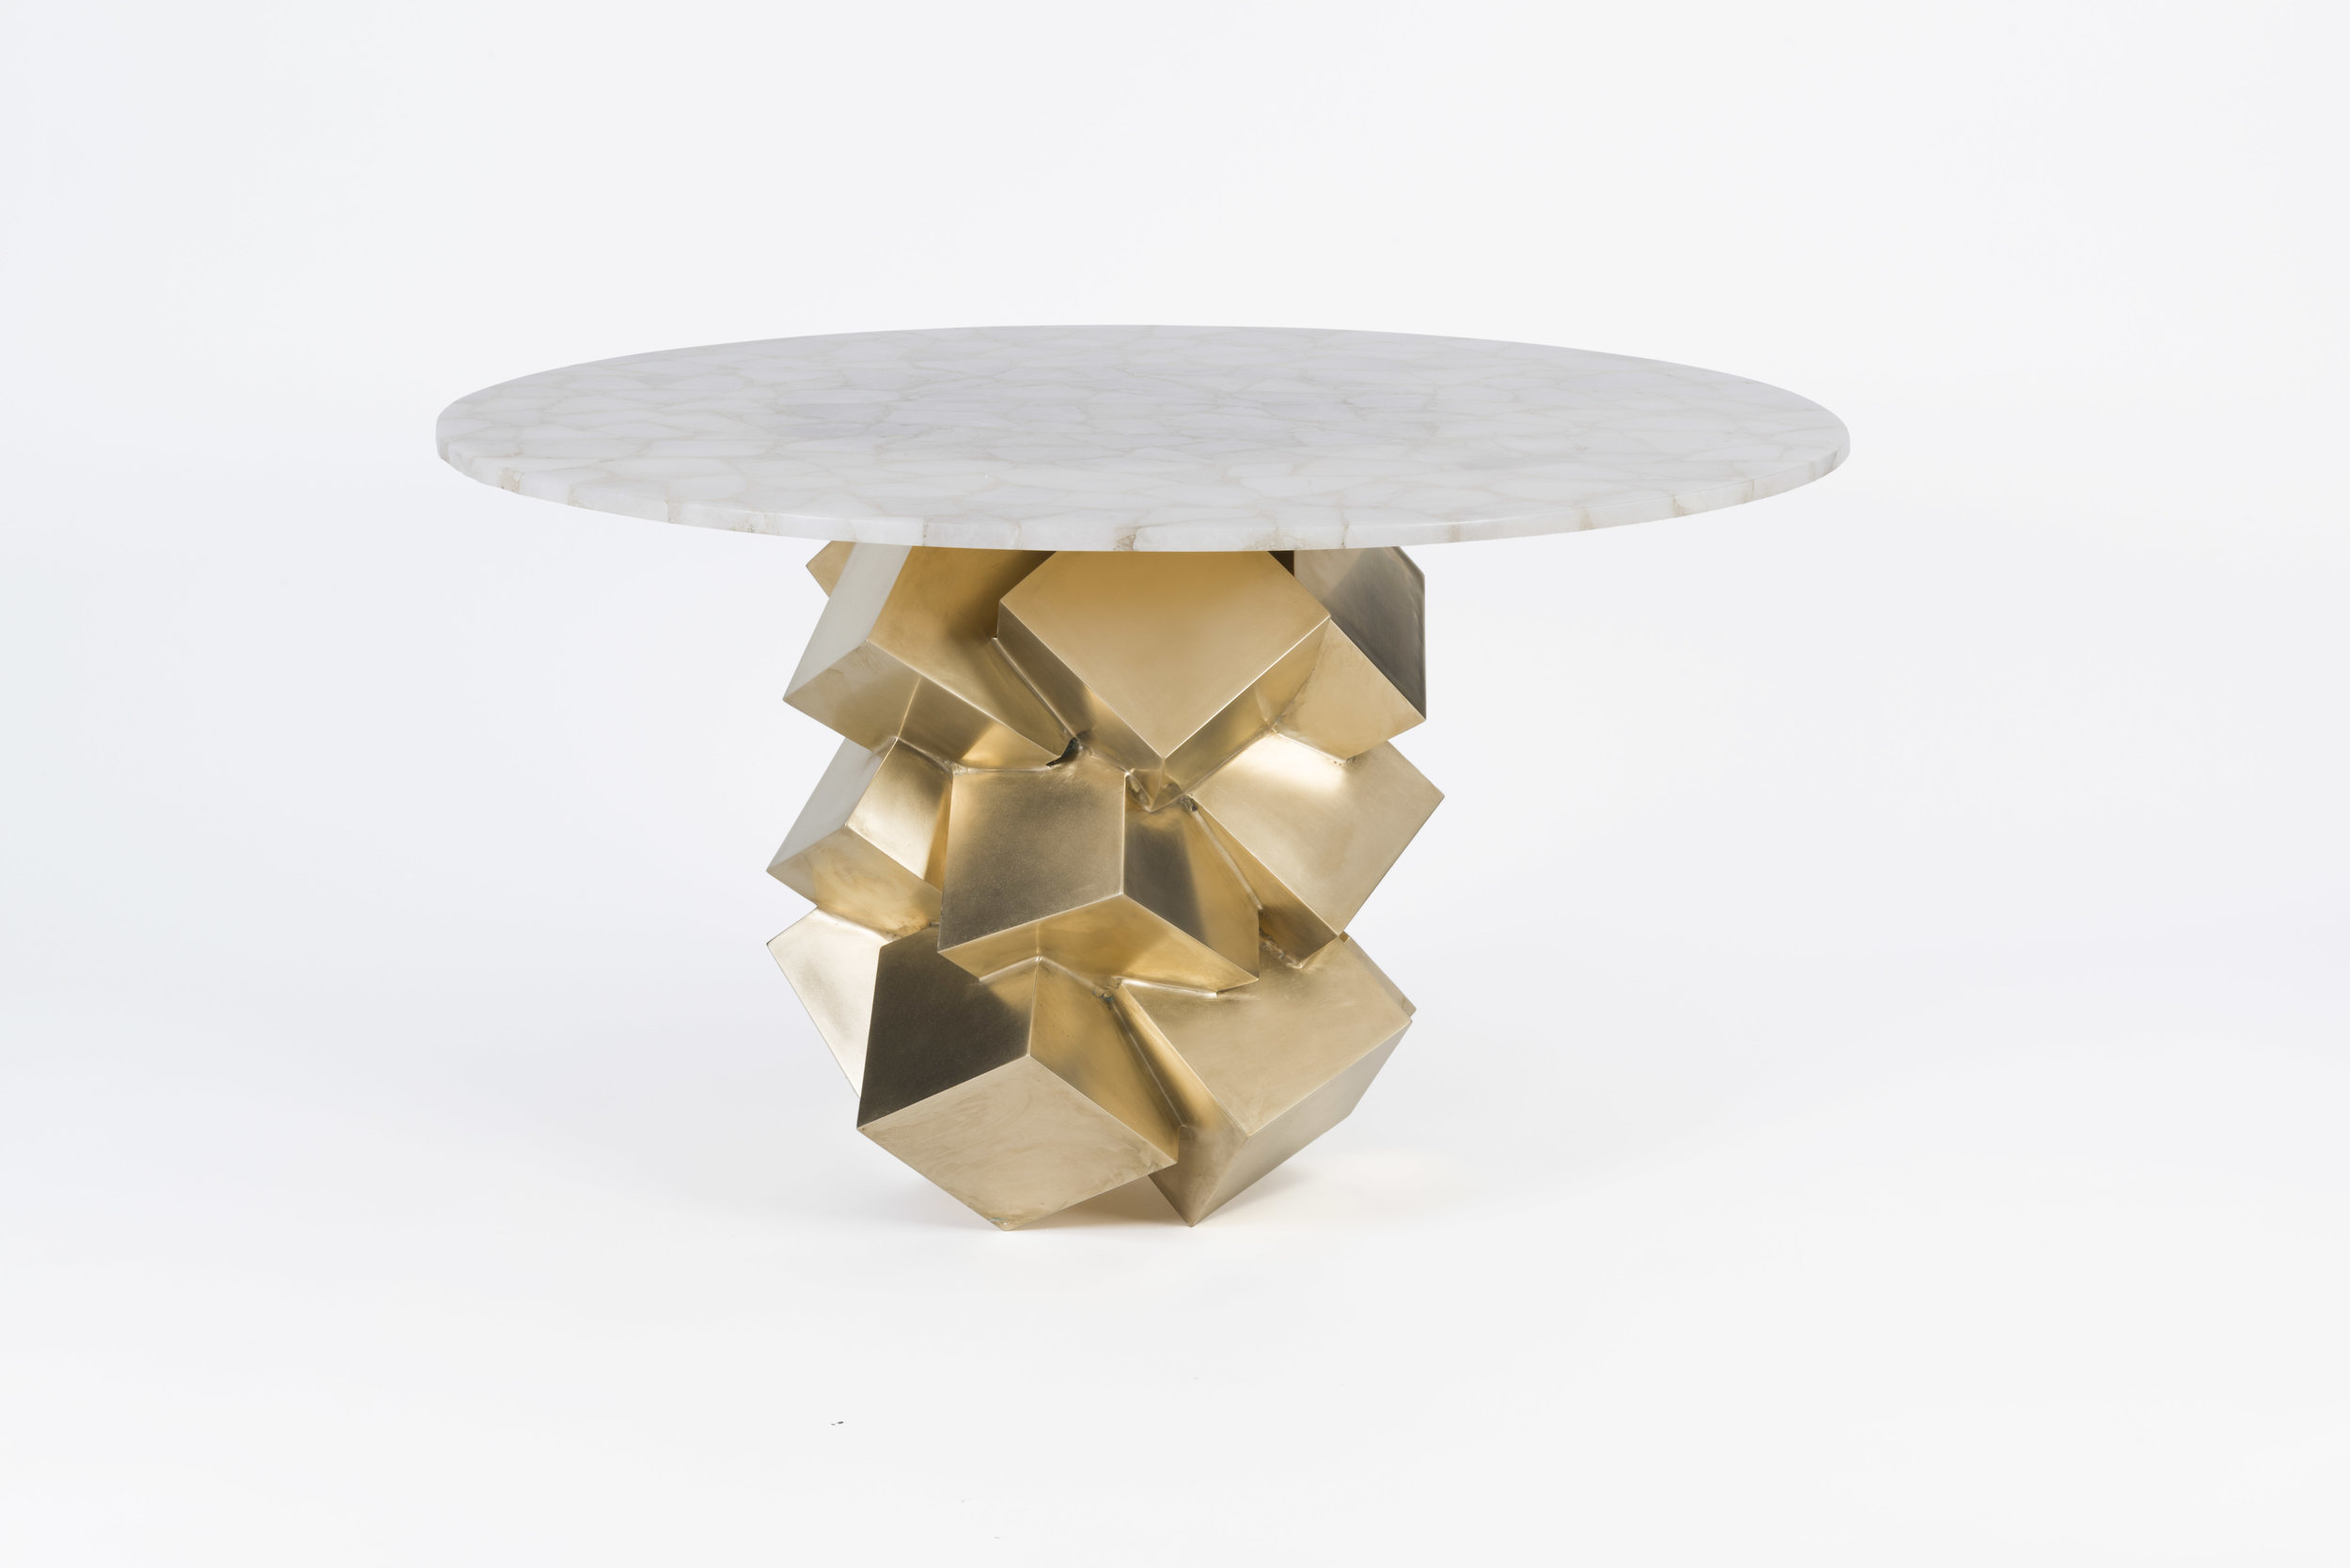 pyrite-table-003.jpg